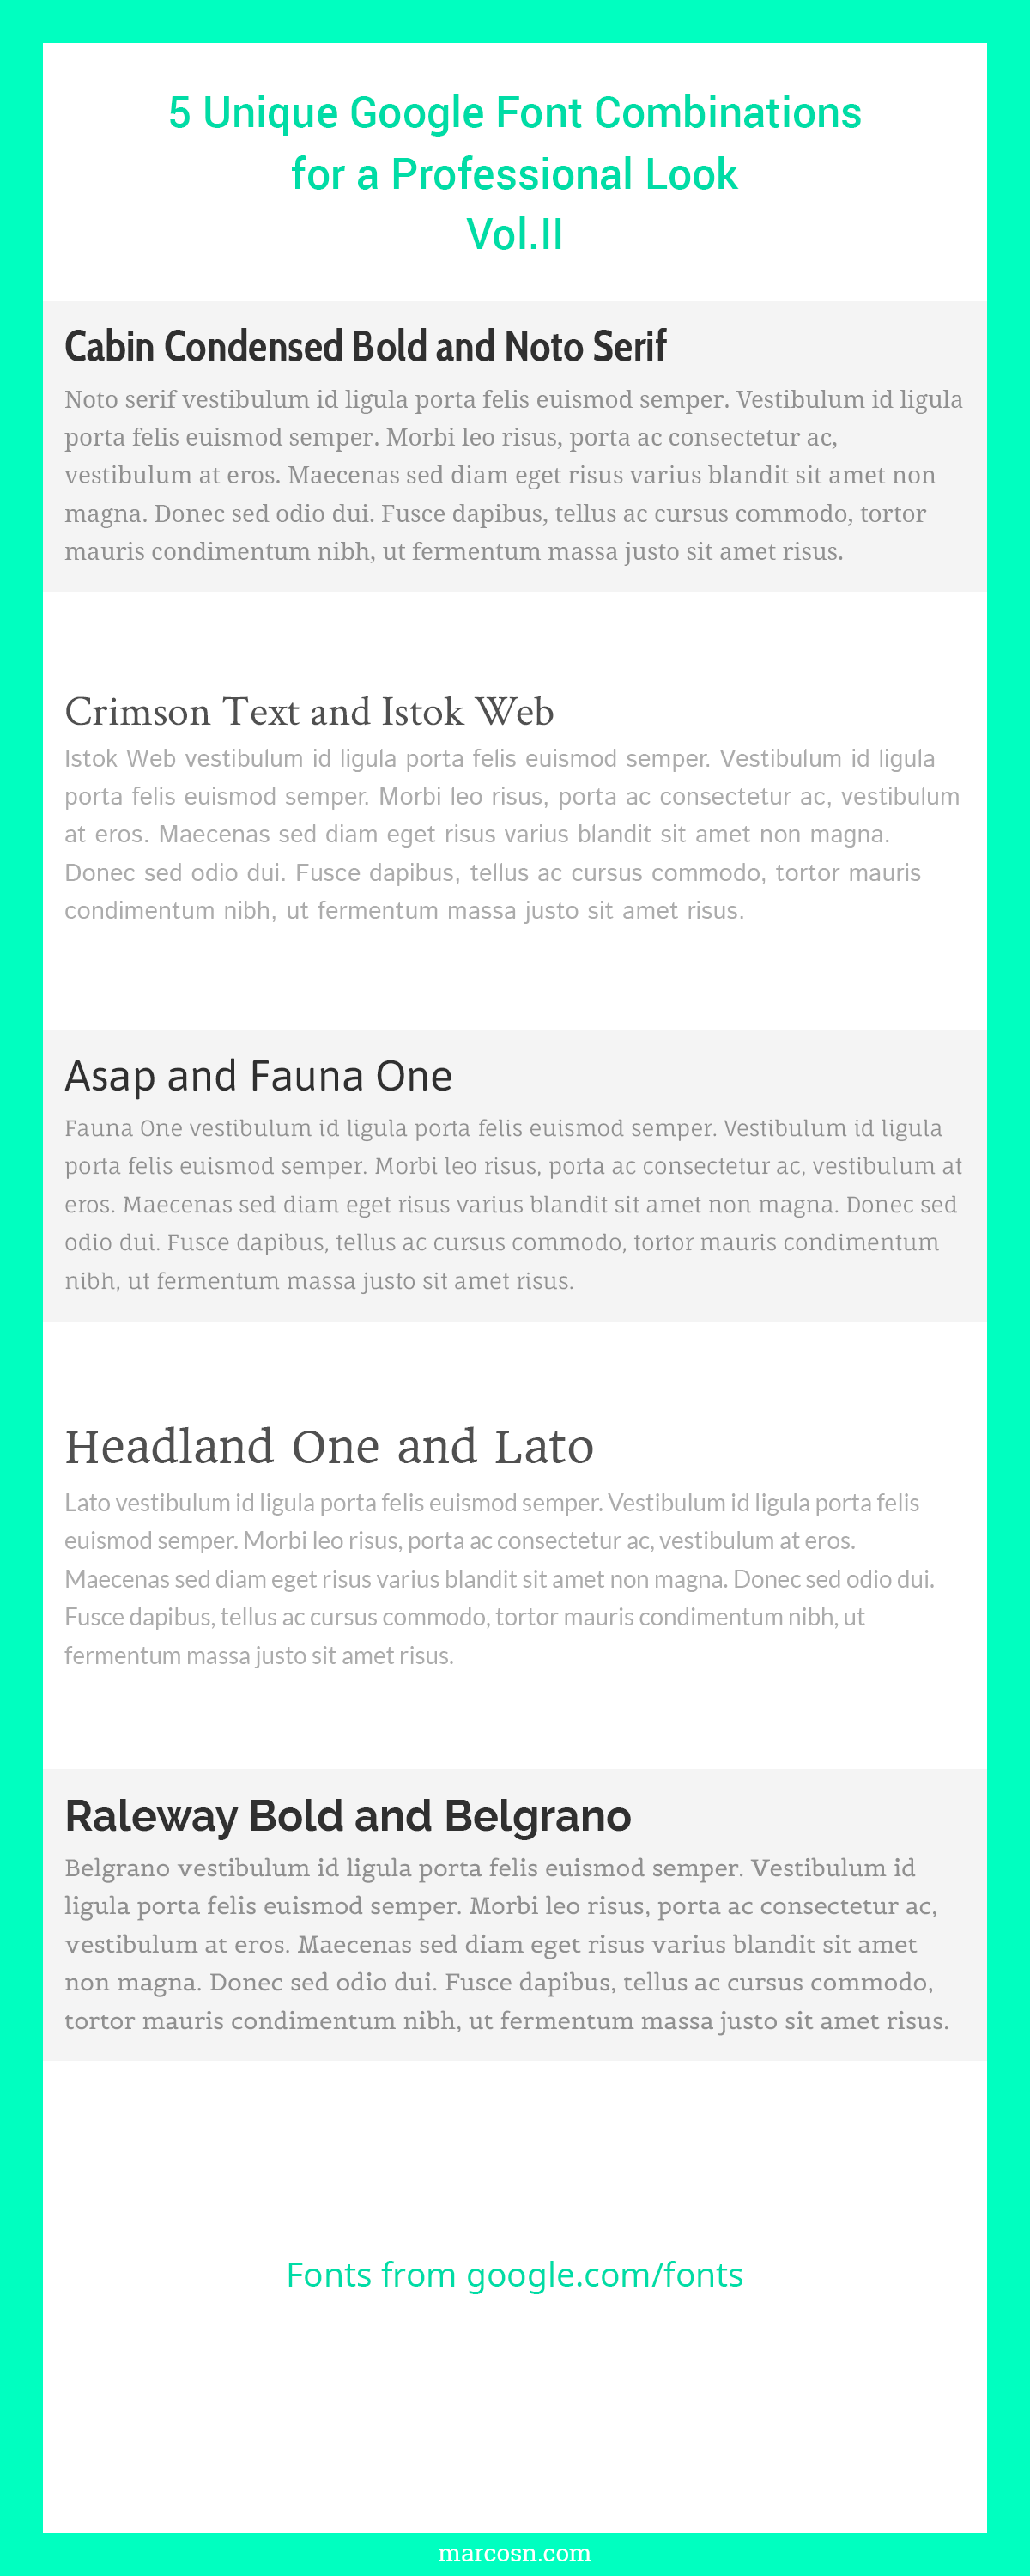 Another 5 Unique Google Font Combinations For a Professional Look